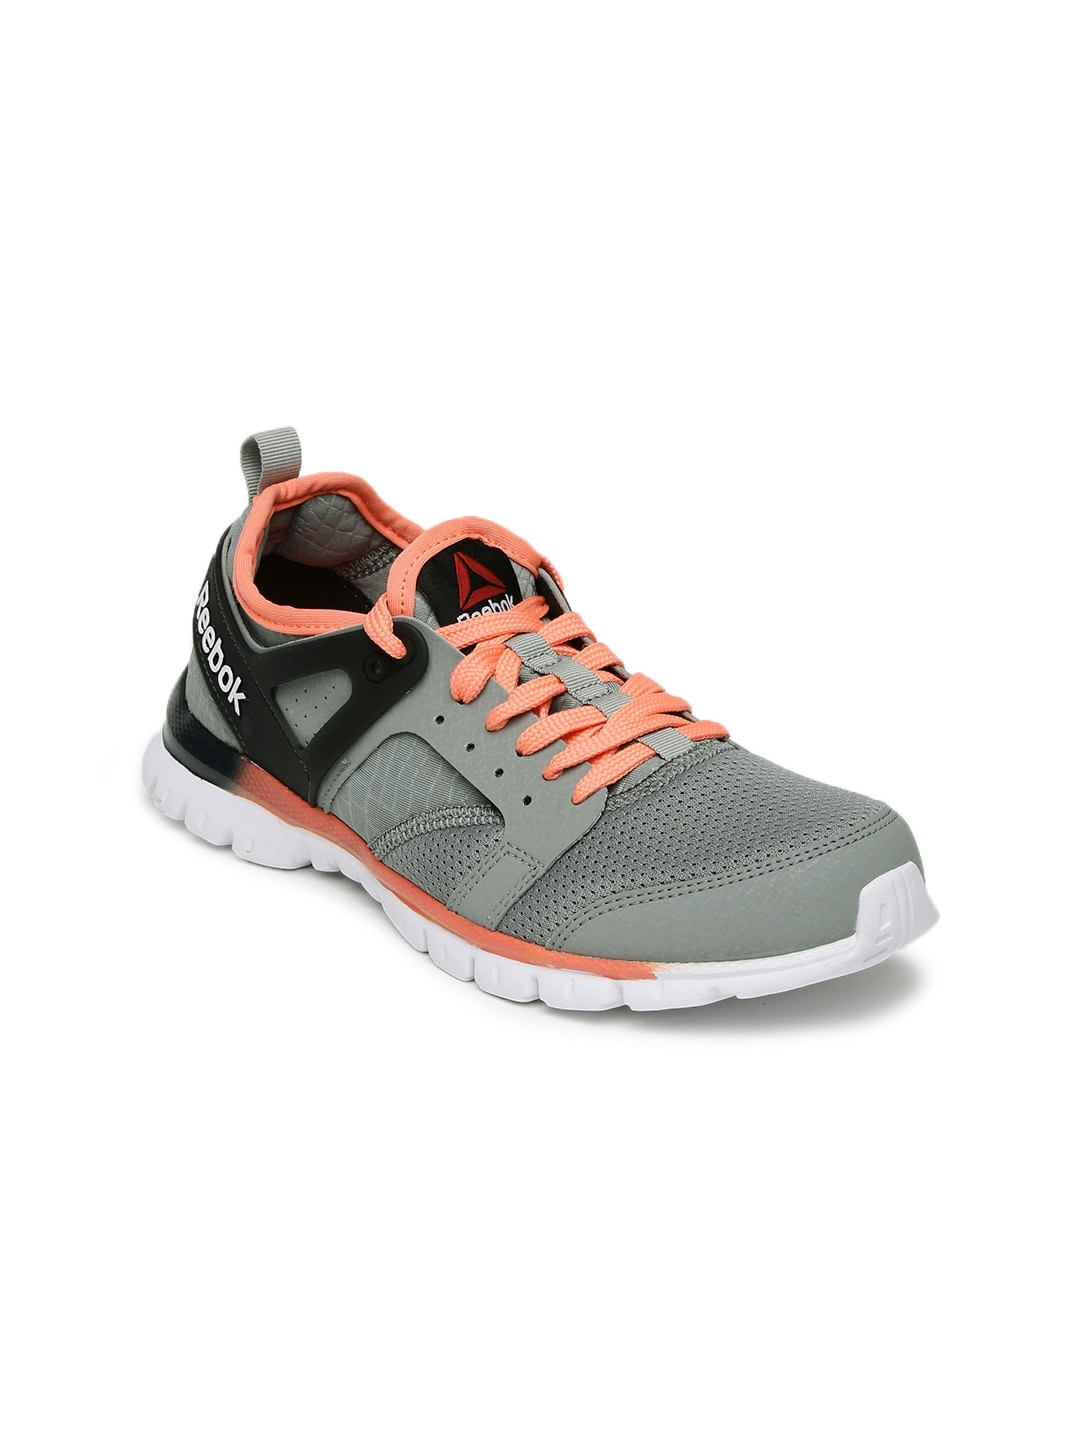 70536397514d13 Reebok bd4075 Women Grey And Peach Coloured Amaze Run Running Shoes- Price  in India